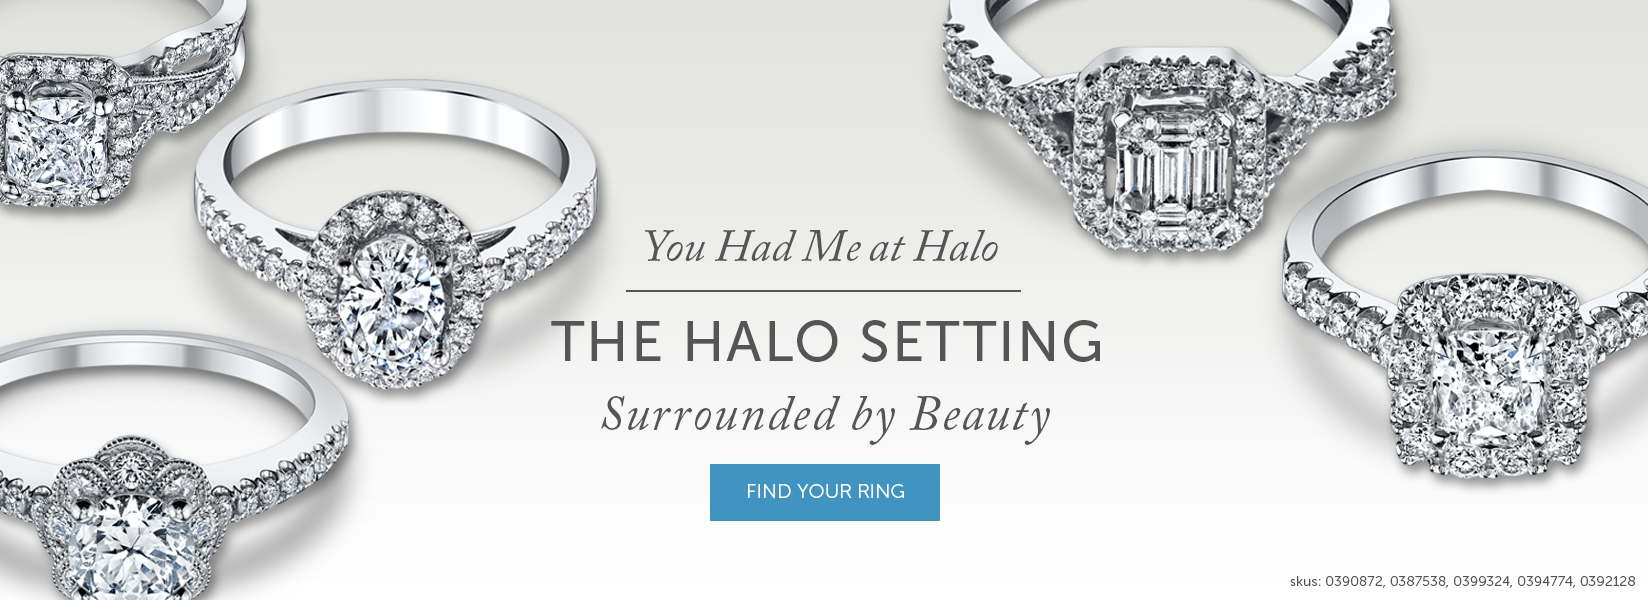 Find the ring of your dreams.